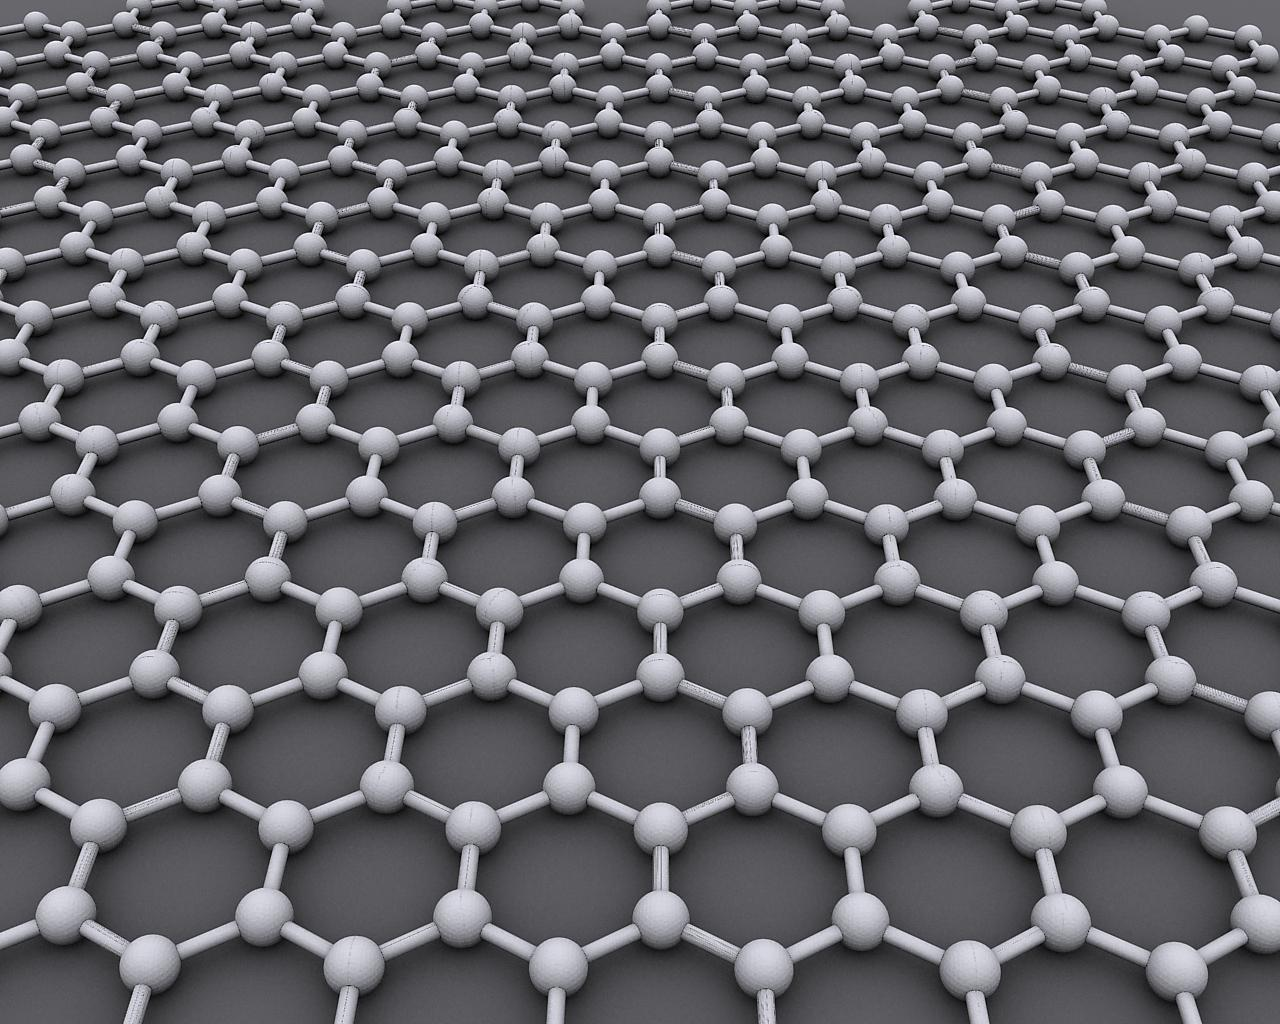 Electricity can flow through graphene at high frequencies without energy loss